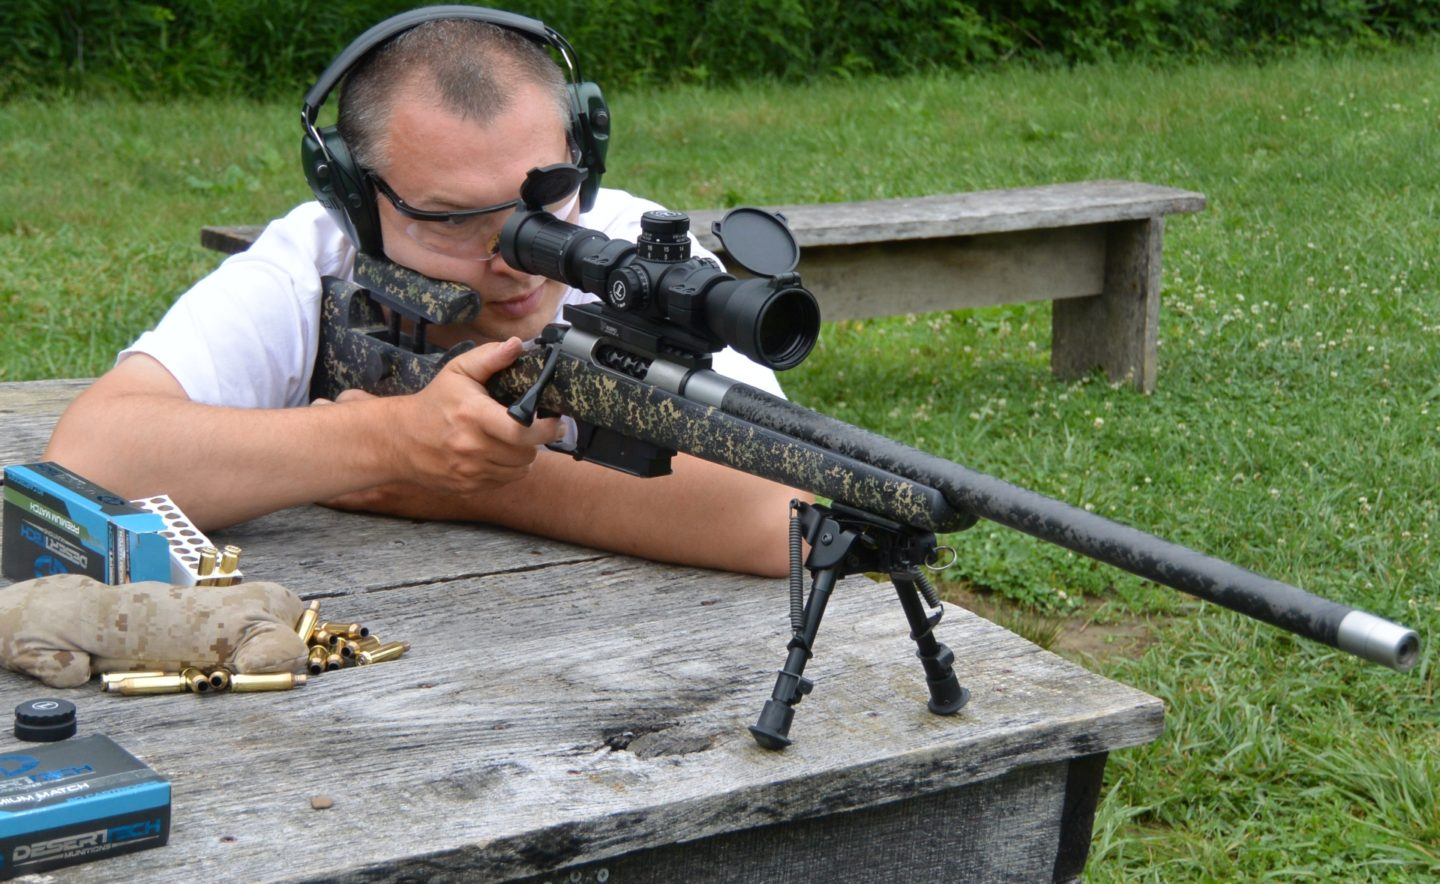 Mesa Precision Arms Crux Ti in McMillan Adjustable Game Warden Edge Carbon Stock at 1000 Yards